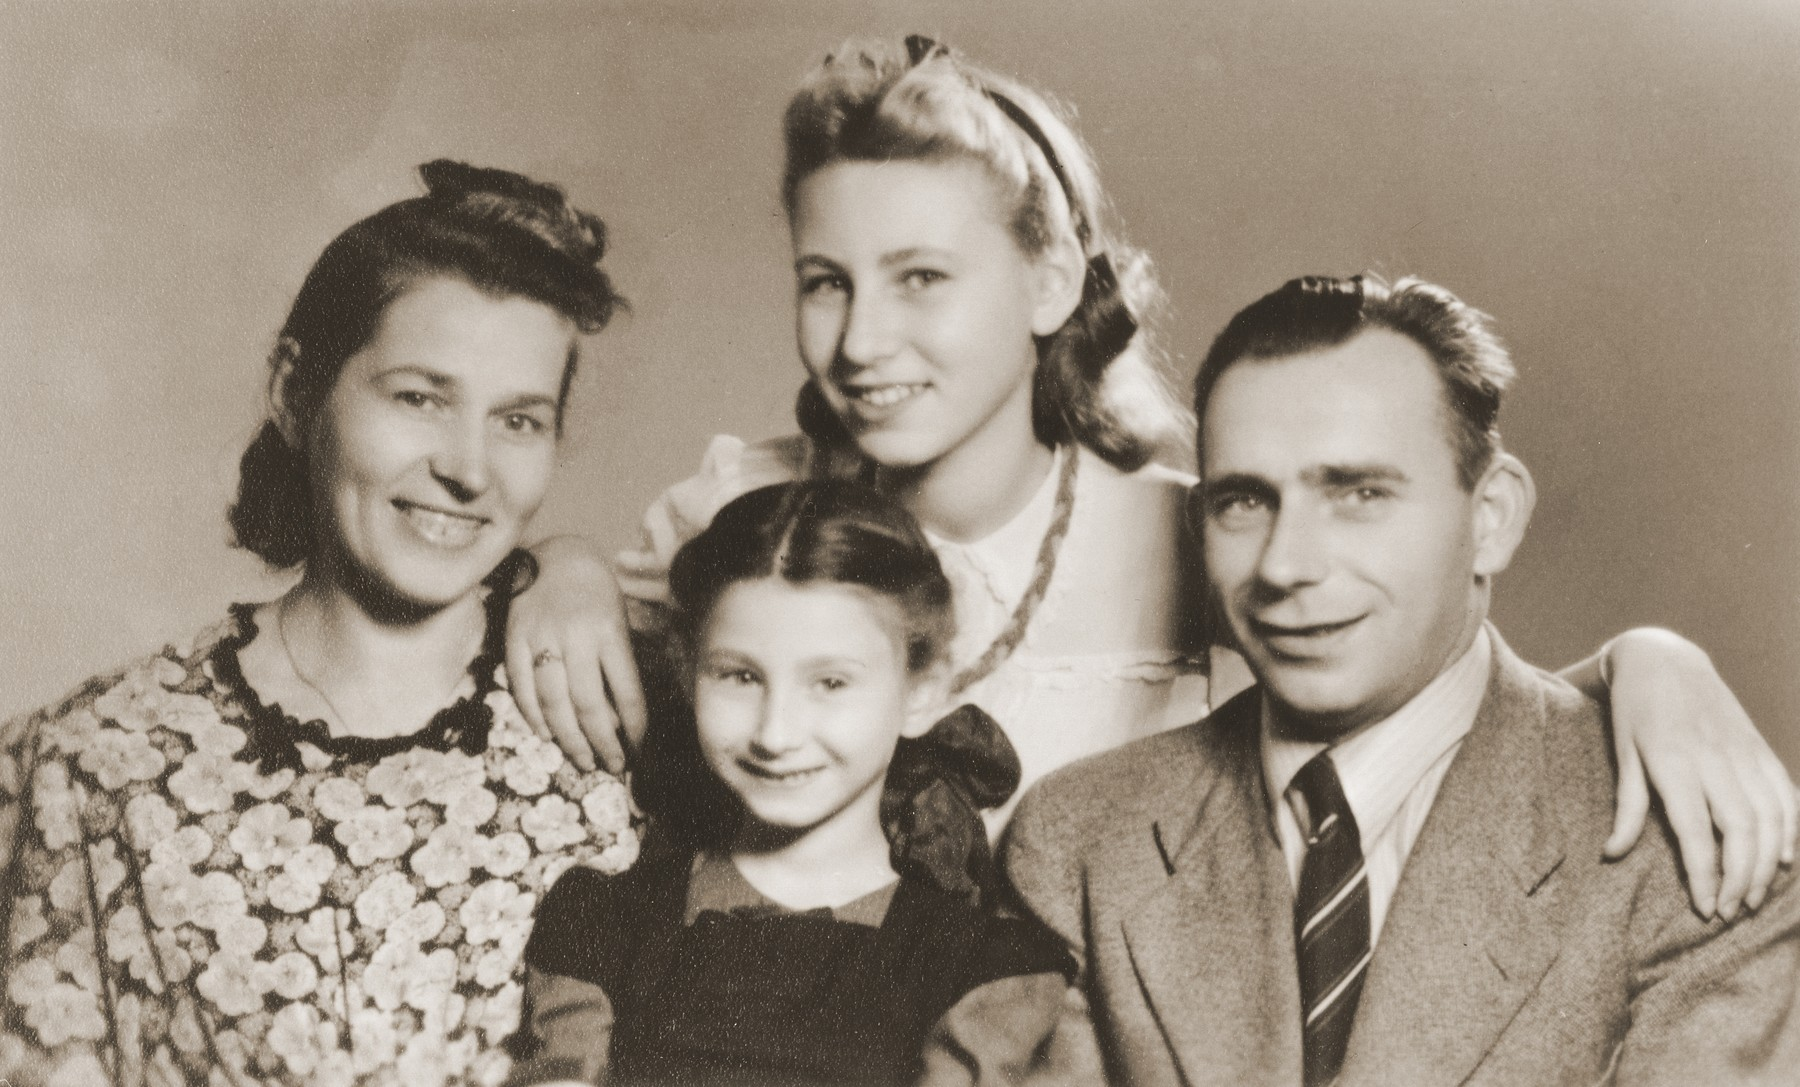 Alicja and Zofja Fajnsztejn, two Jewish sisters in hiding, pose with their rescuers, Helena and Josef Biczyk.    The picture was taken in the photo studio of the Biczyk's cousin.